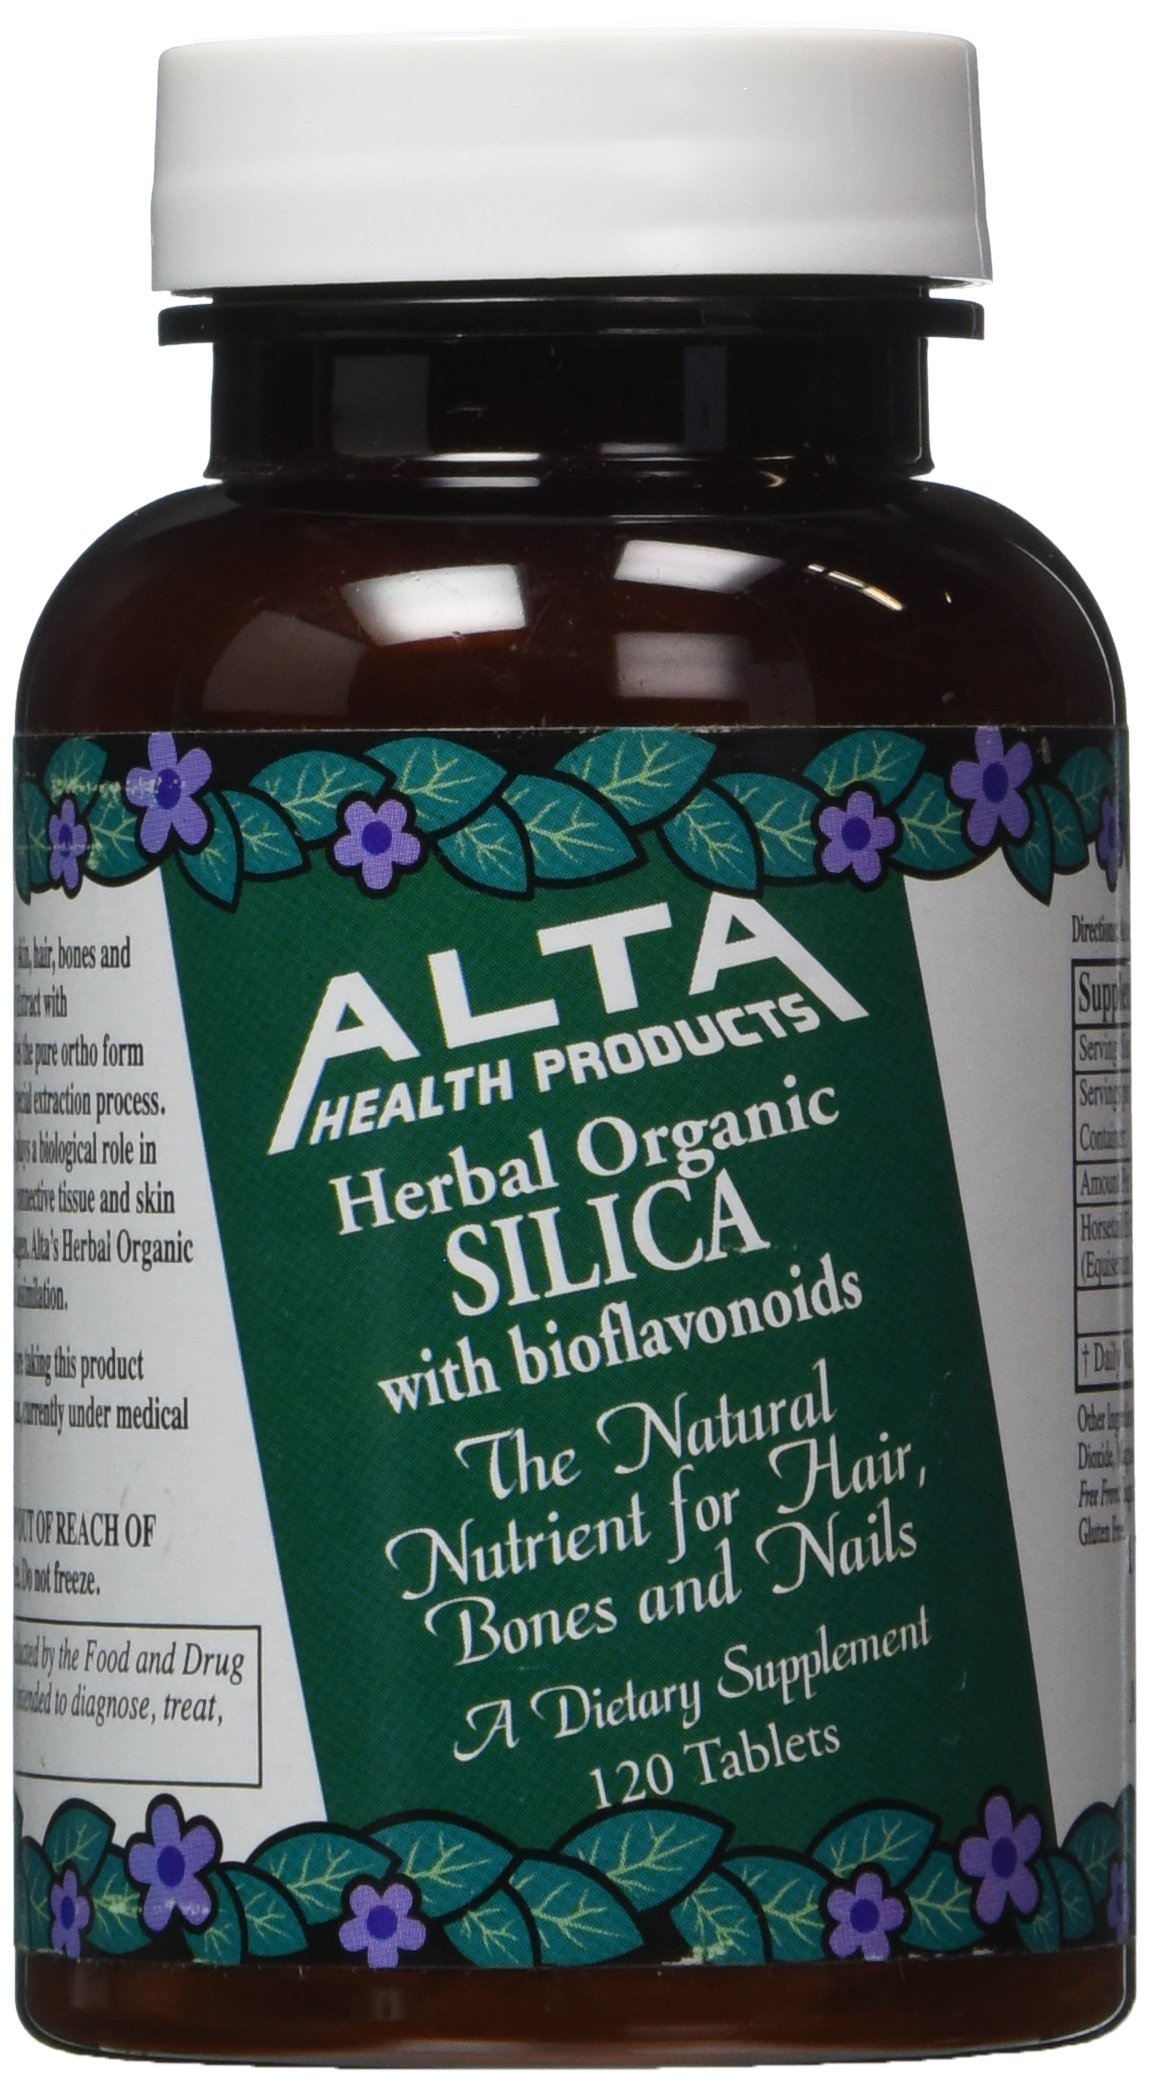 Amazon.com: Alta Health Products - Silica With Bioflavonoids, 500 mg, 120 tablets: Health & Personal Care